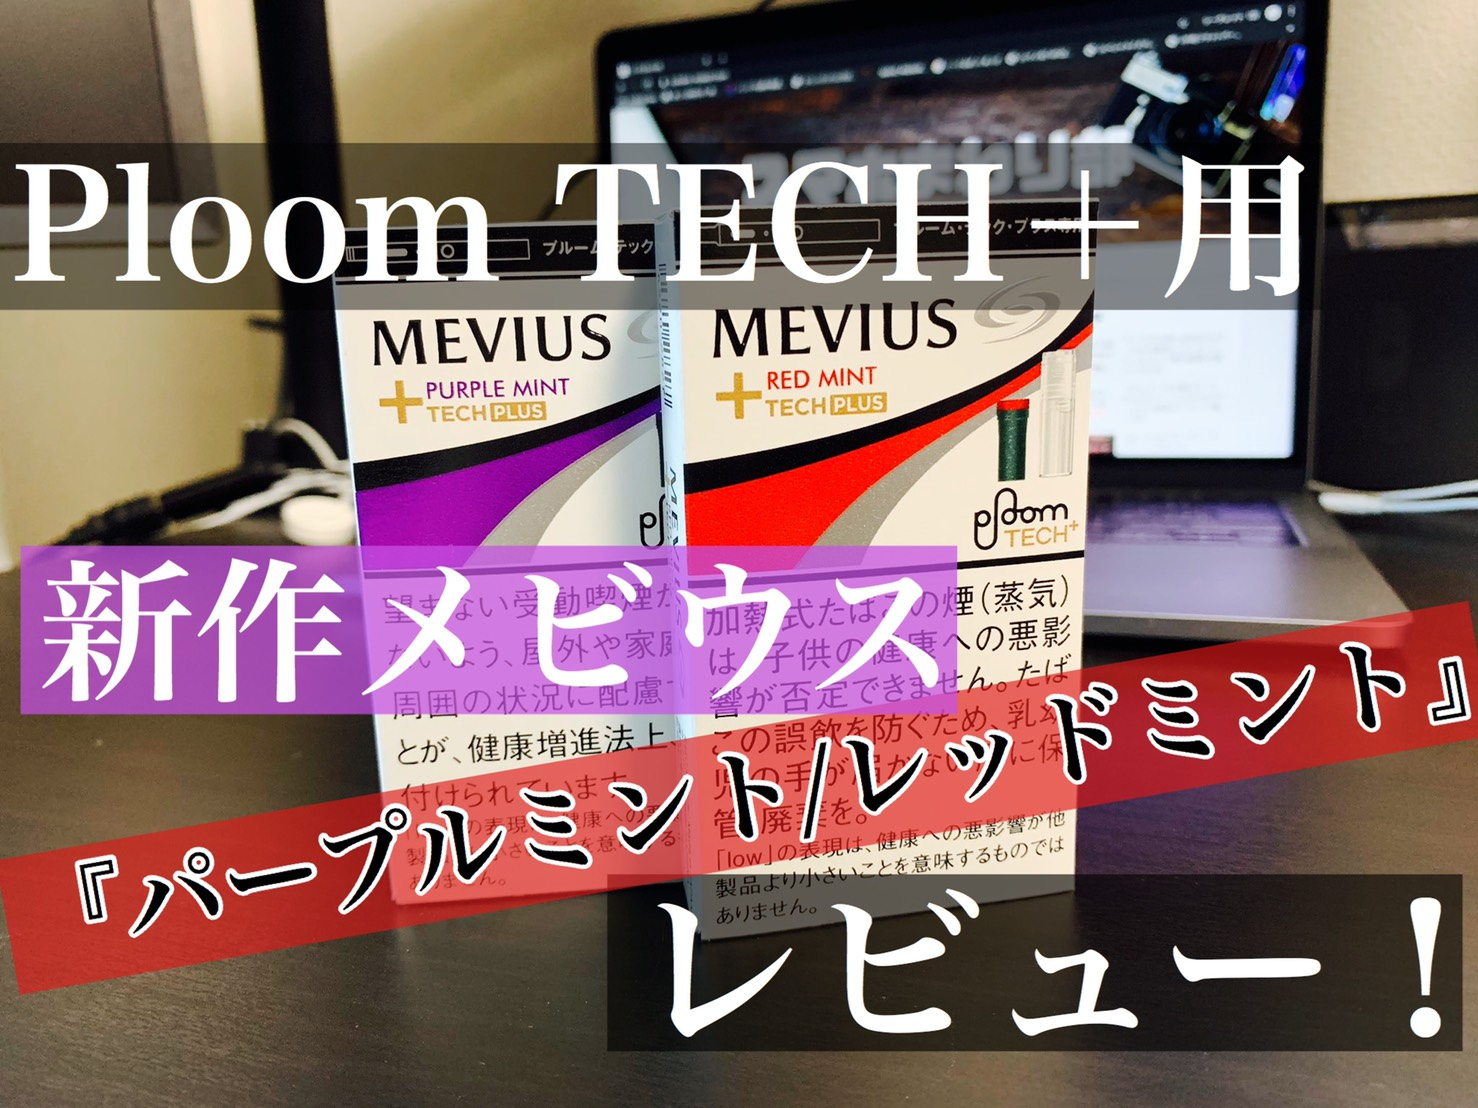 ploomtechplus new-mevius-capsule-2019-11 eye catch